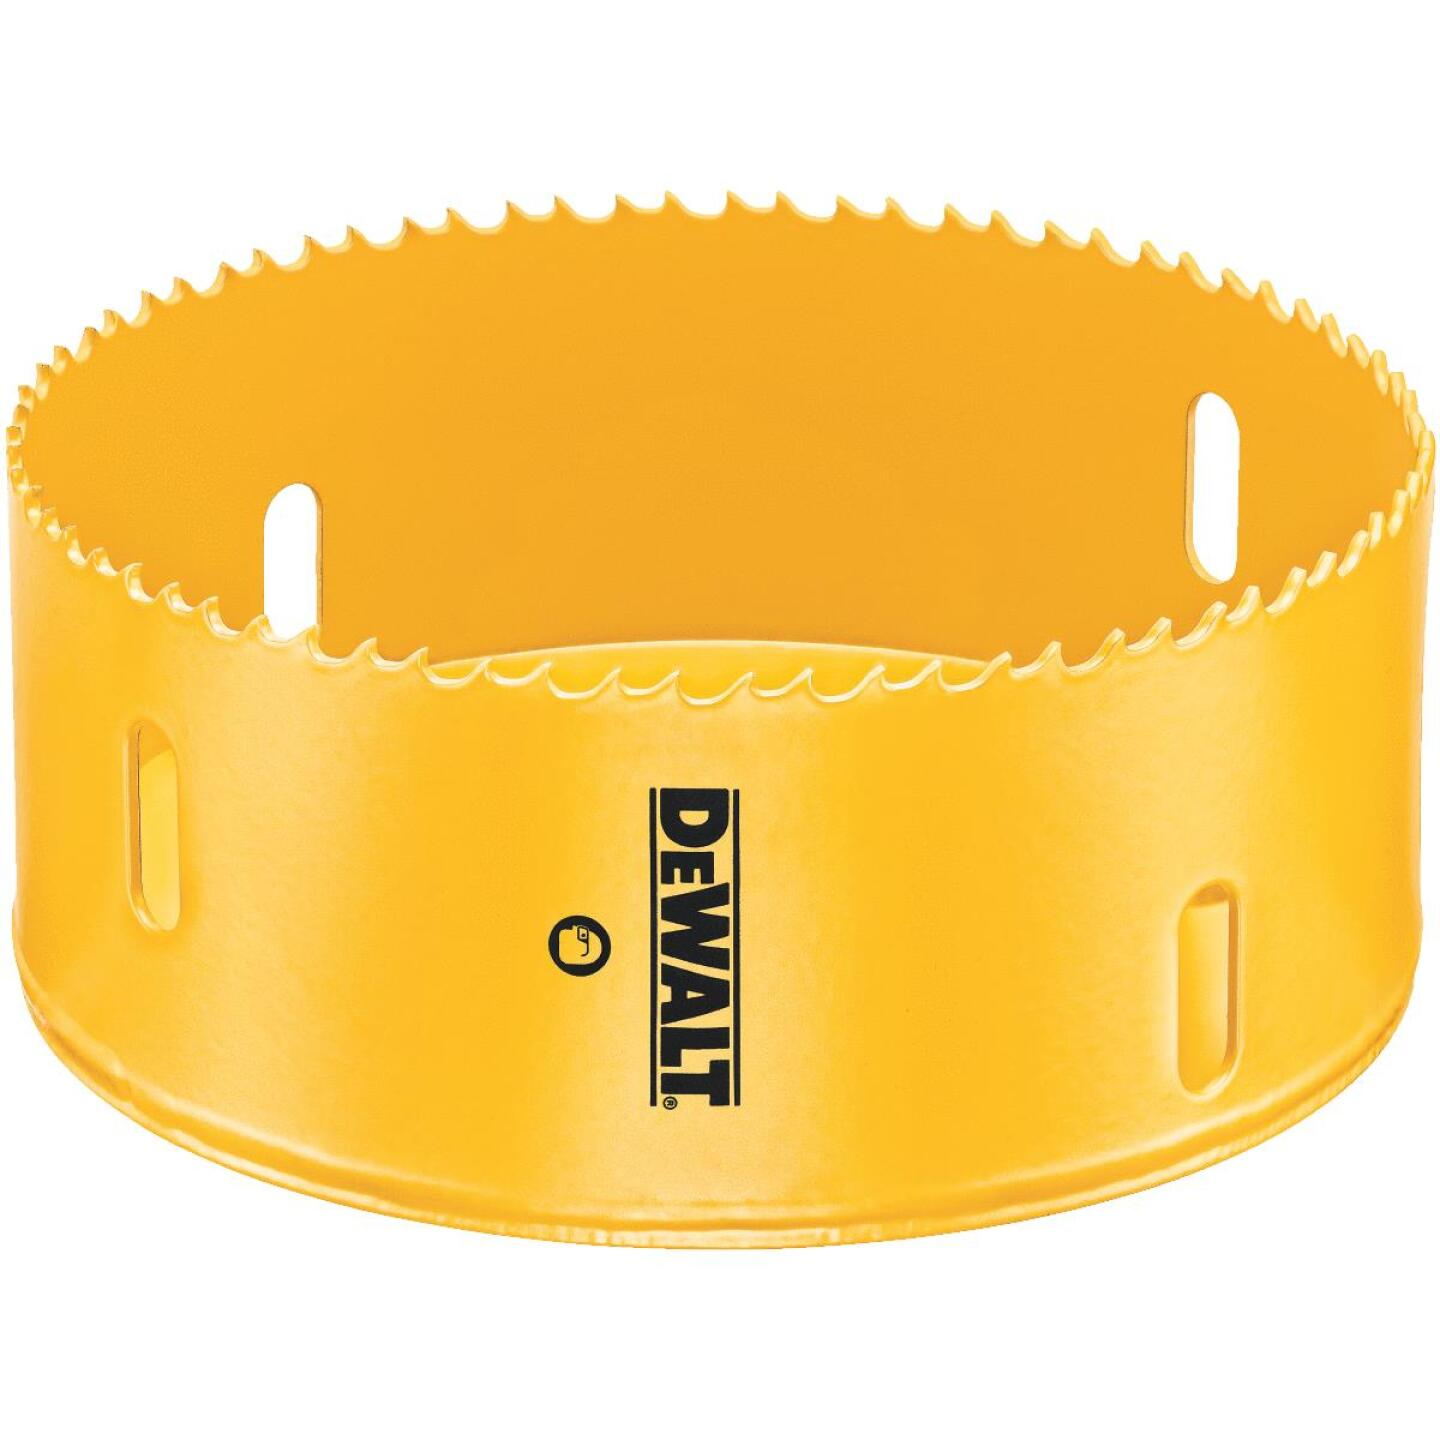 DeWalt 3-1/2 In. Bi-Metal Hole Saw Image 1